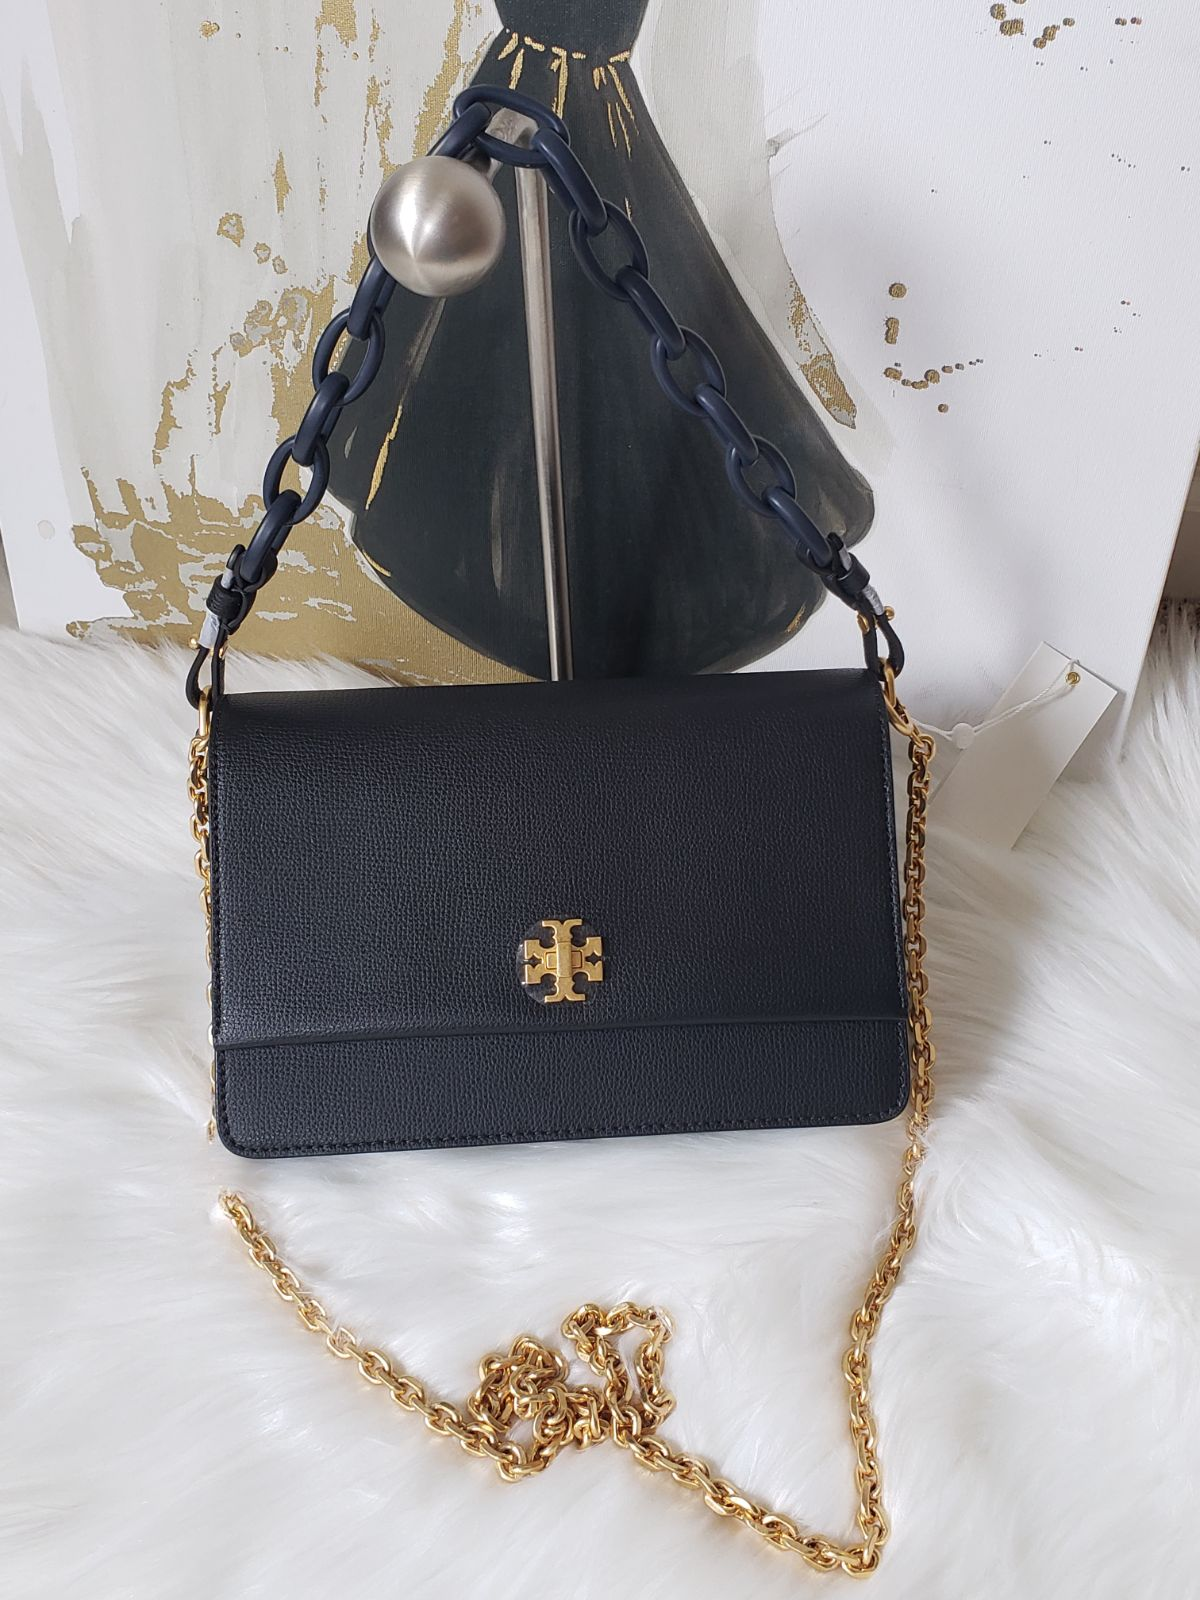 17c0b5c9a007 Tory Burch  Up to 70% Off Private Sale + Free Shipping. – Dealing in ...